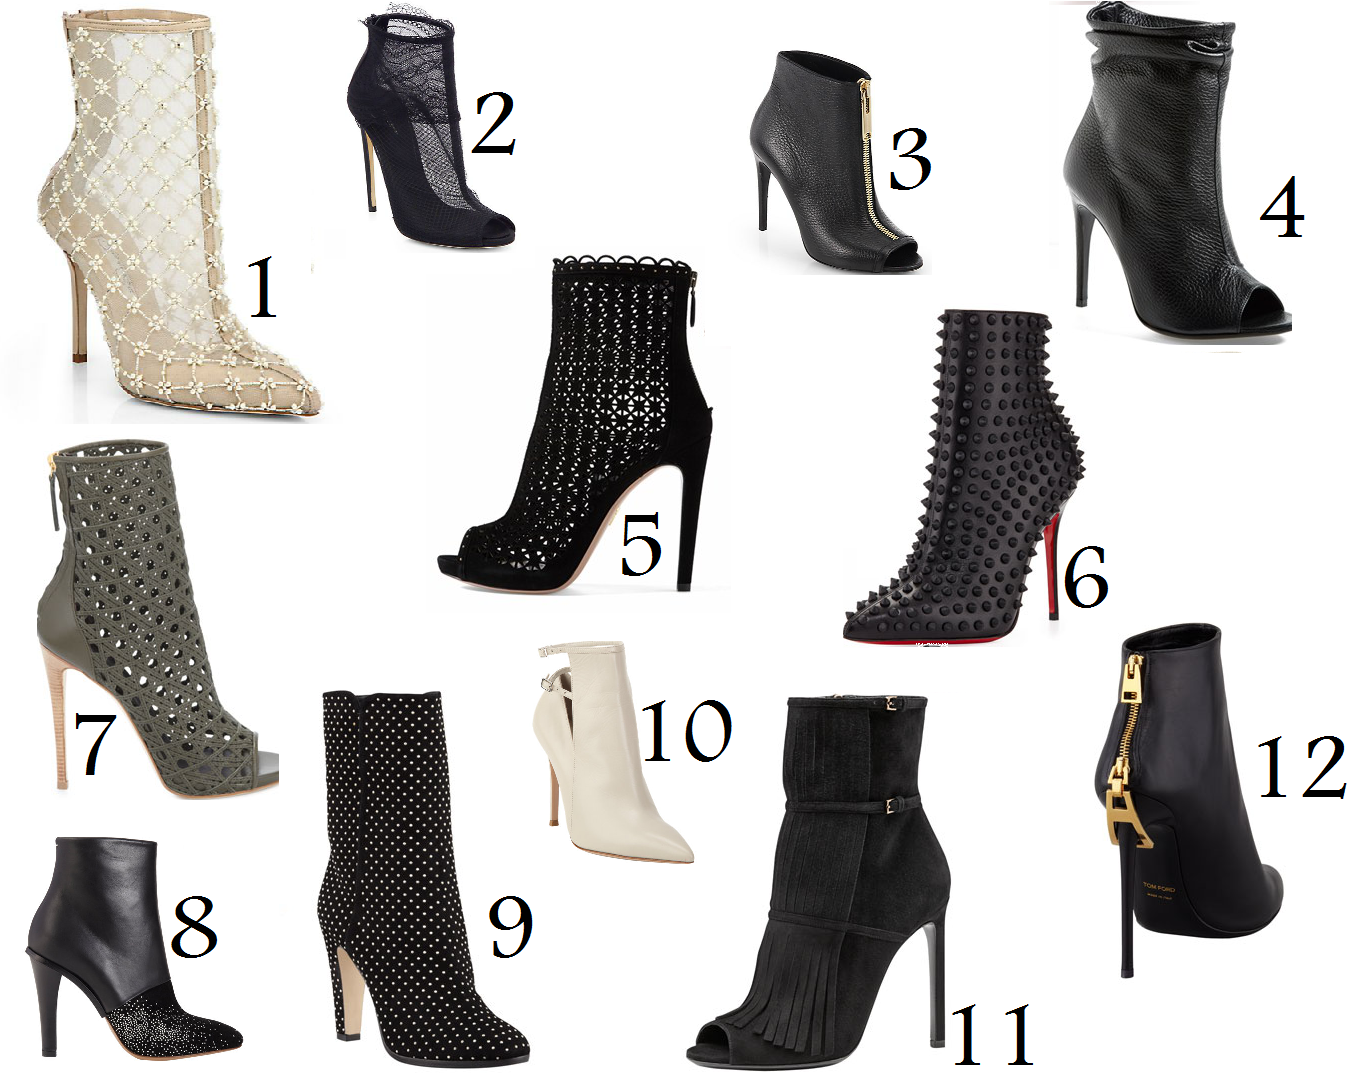 Stand Out, Above the Crowd: Wishing Wednesdays: Booties